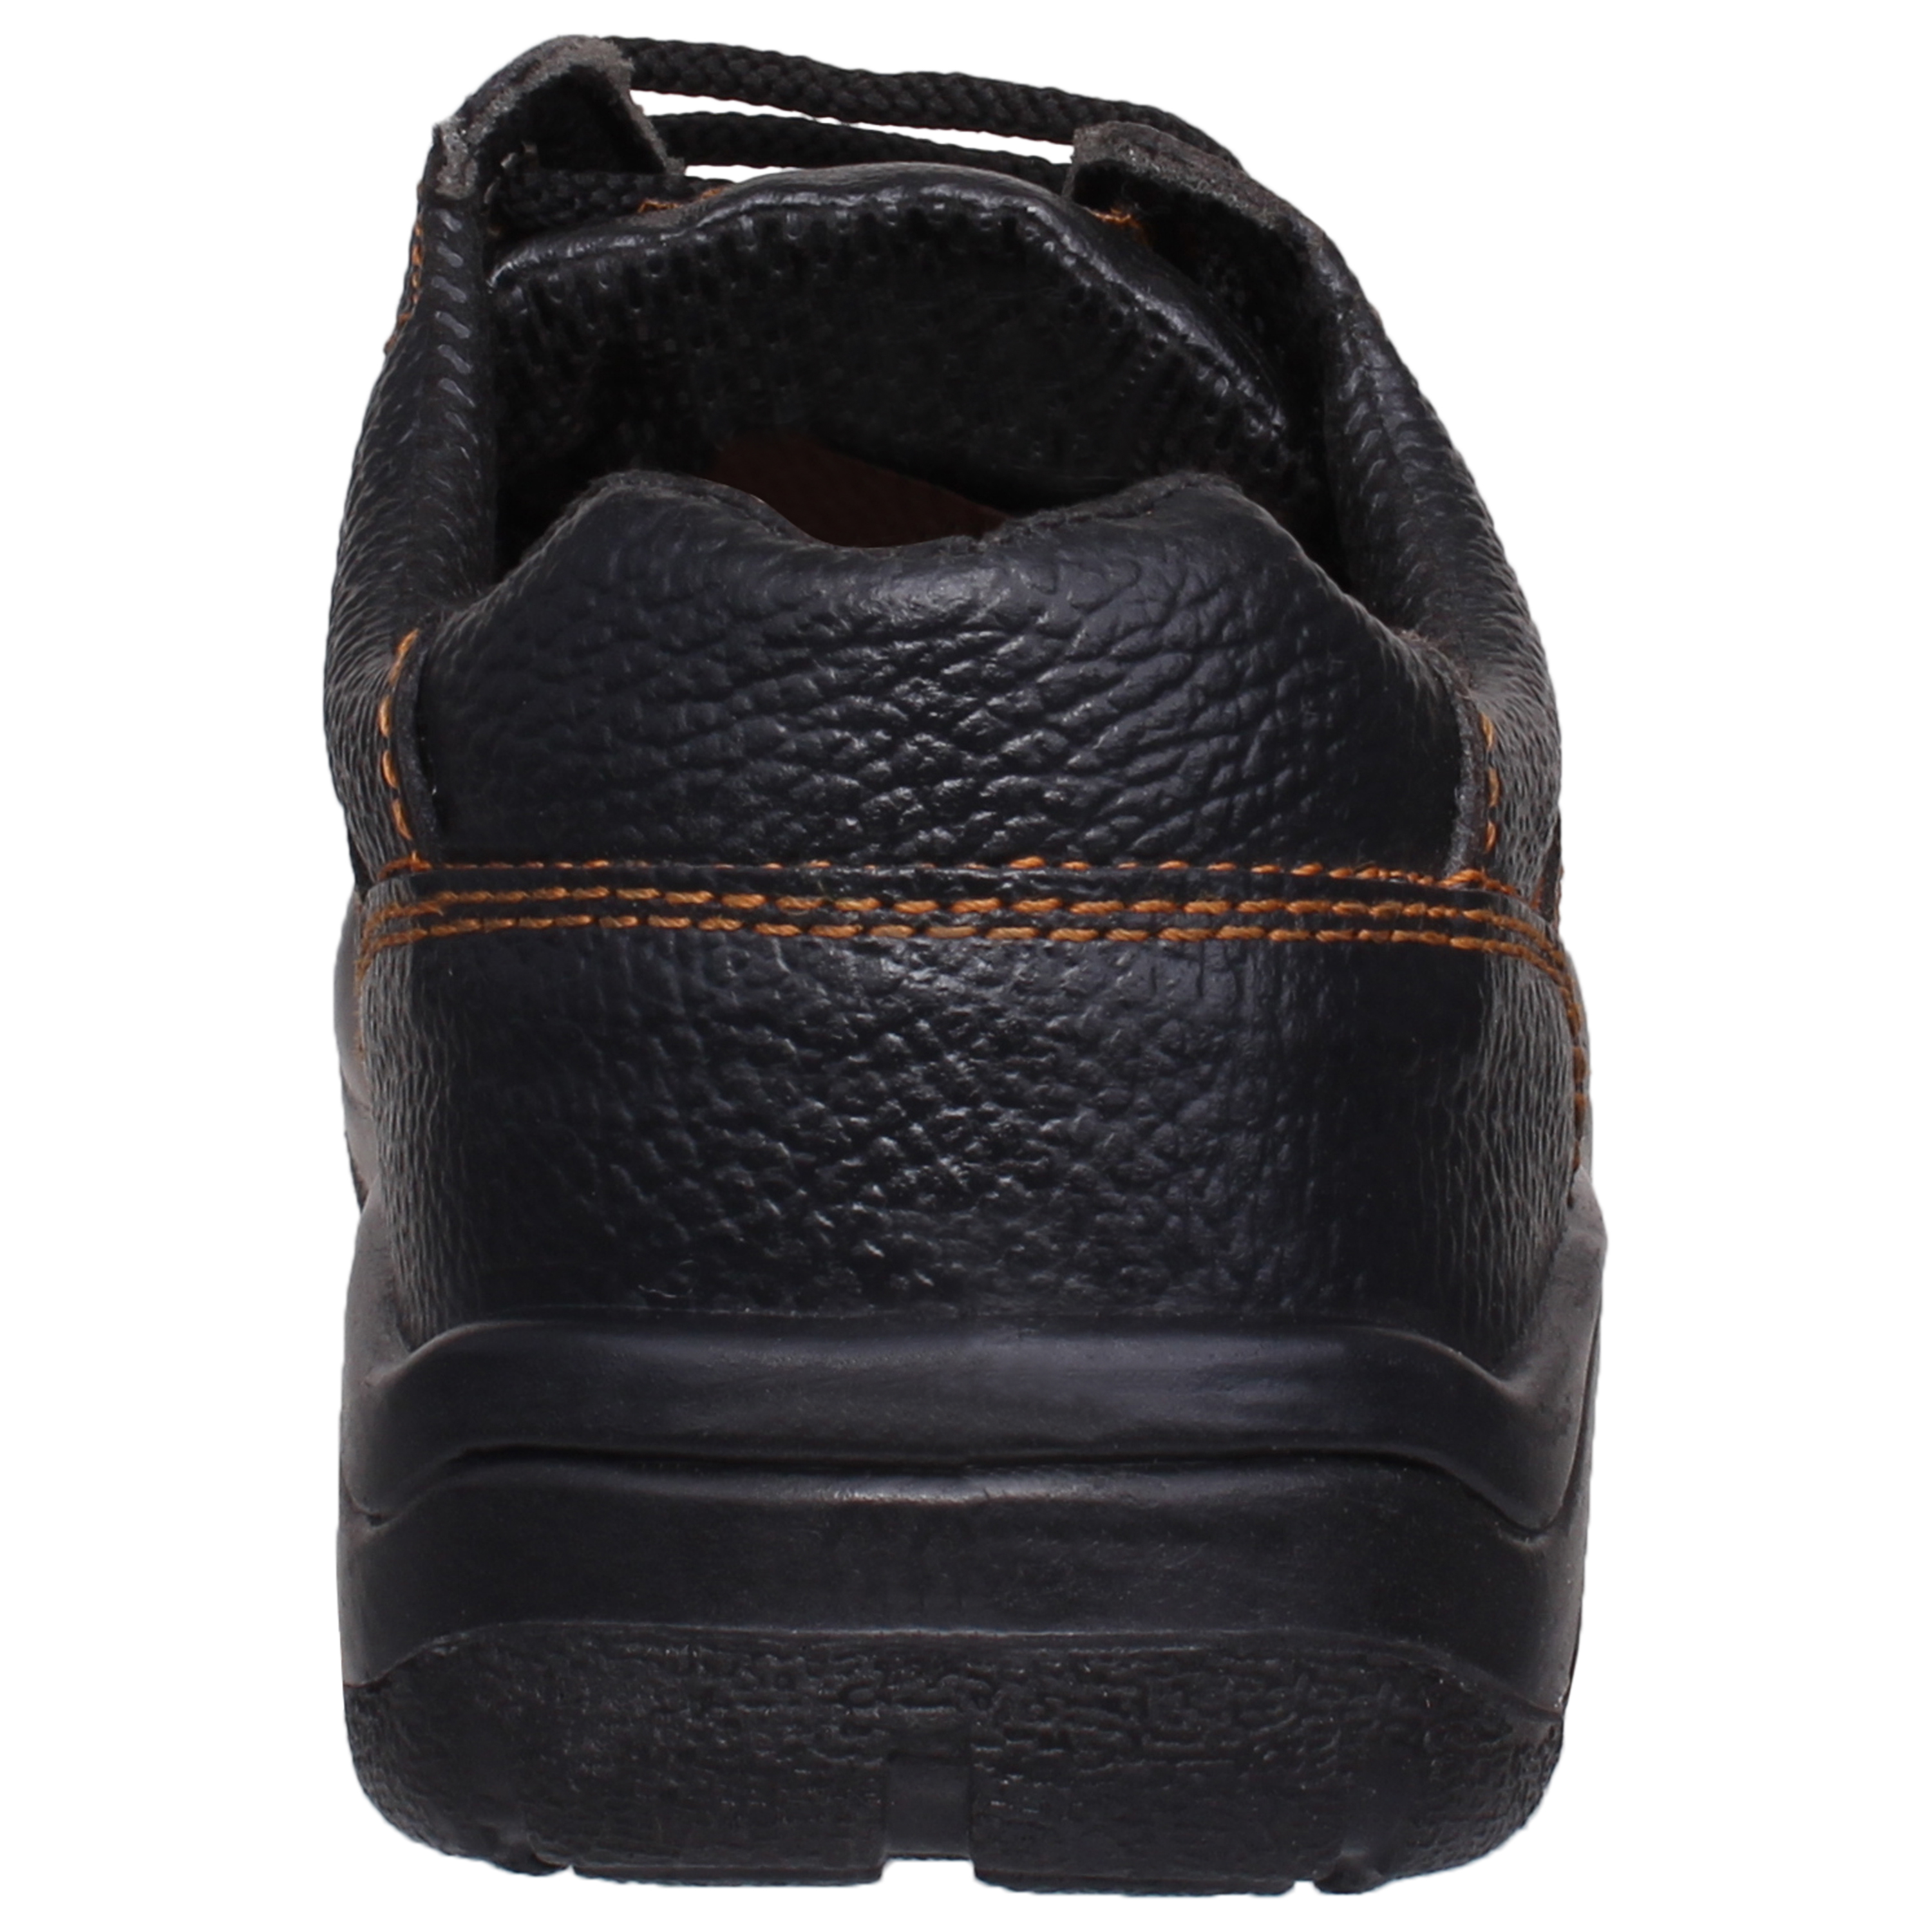 Pu Leather safety shoes